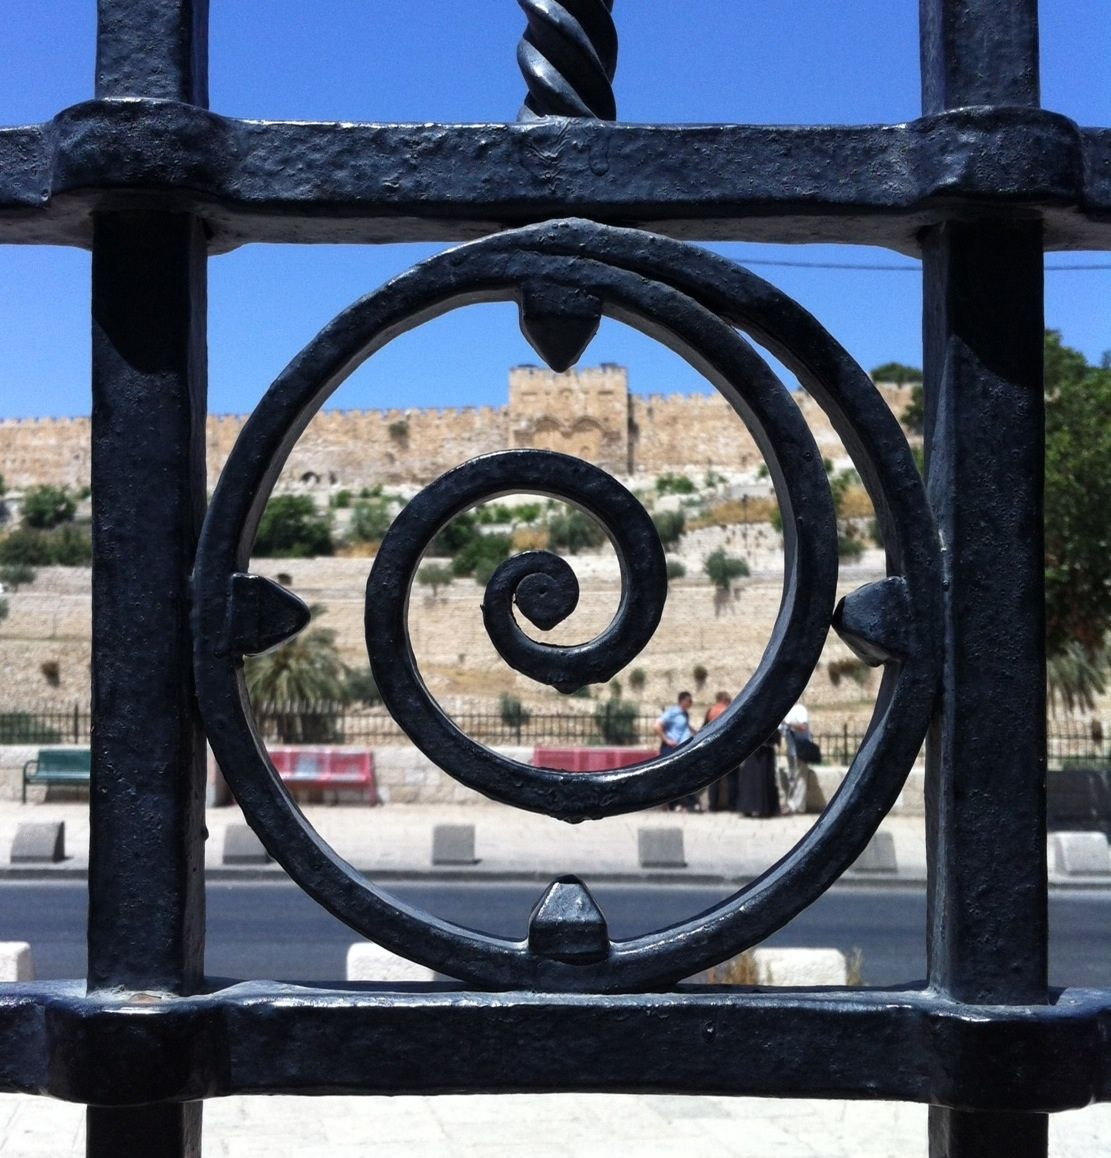 My Favorite Symbol On The Gate Of Garden Gethsemane Looking And Towards Eastern Pic Taken Sent To Me By Brother